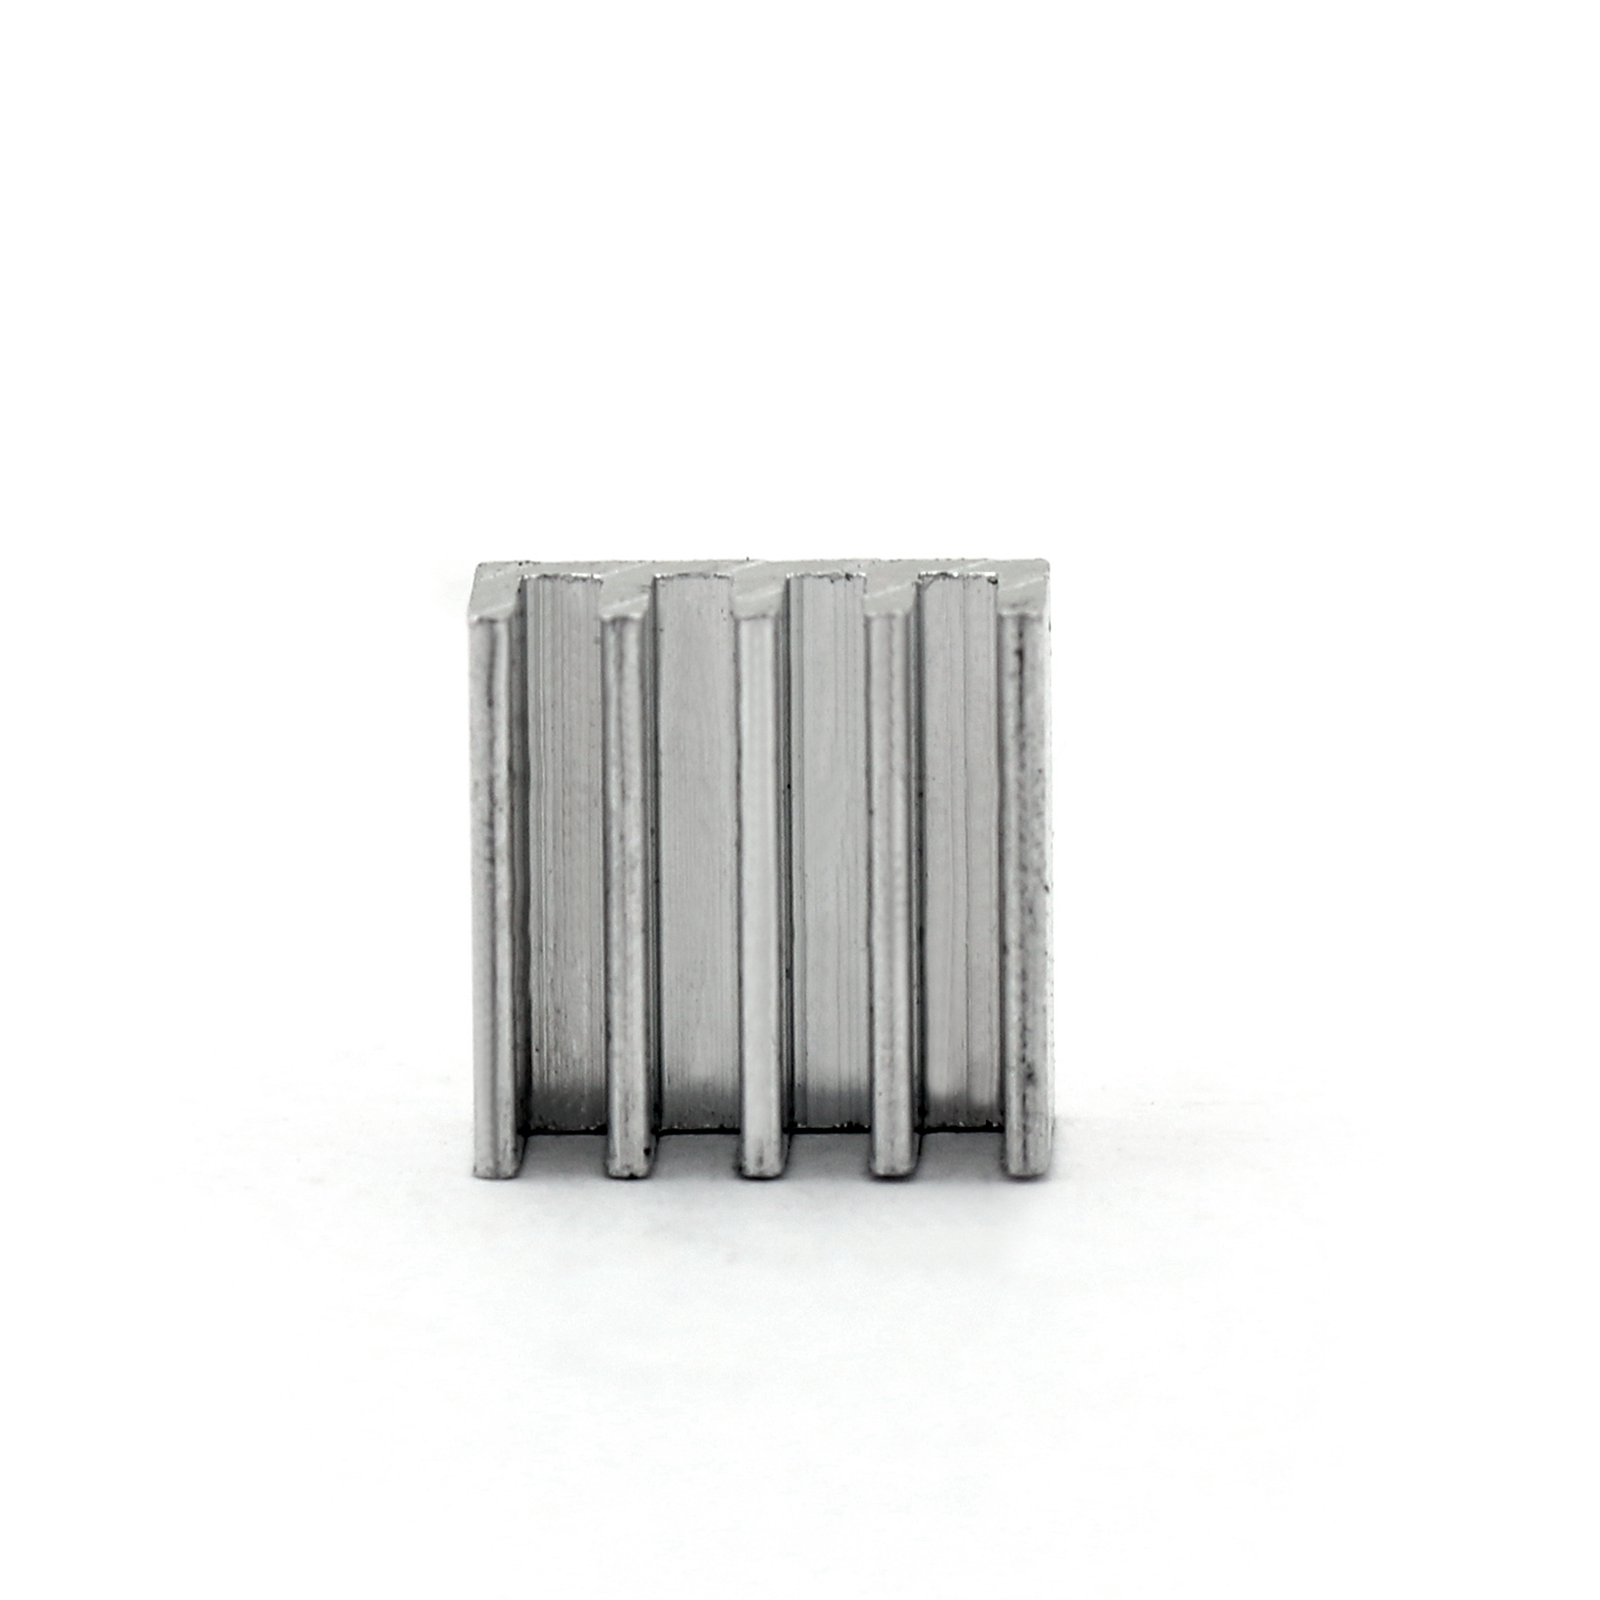 10pcs Heat Sink Cooler 9x9x5mm Radiator For Power Cpu Transistor Time Delay Uses Ic Perfect Use In Hobby Electronics Projects 4 Suit Mosfet Scr Chipset Vr Ddr